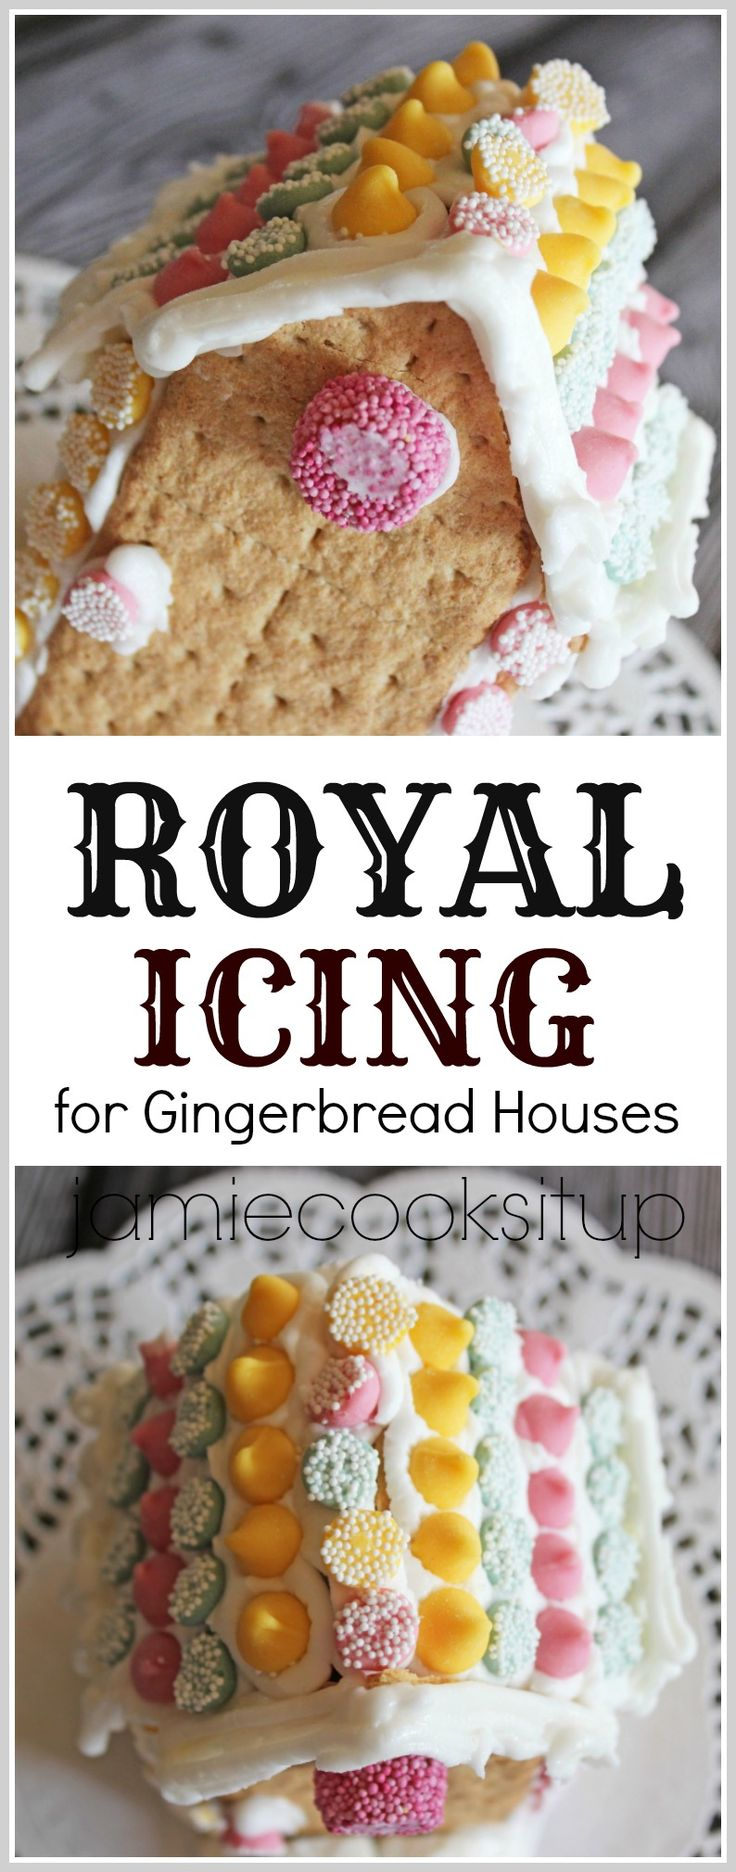 How to make Royal Icing for Gingerbread Houses plus tips for hosting a party.